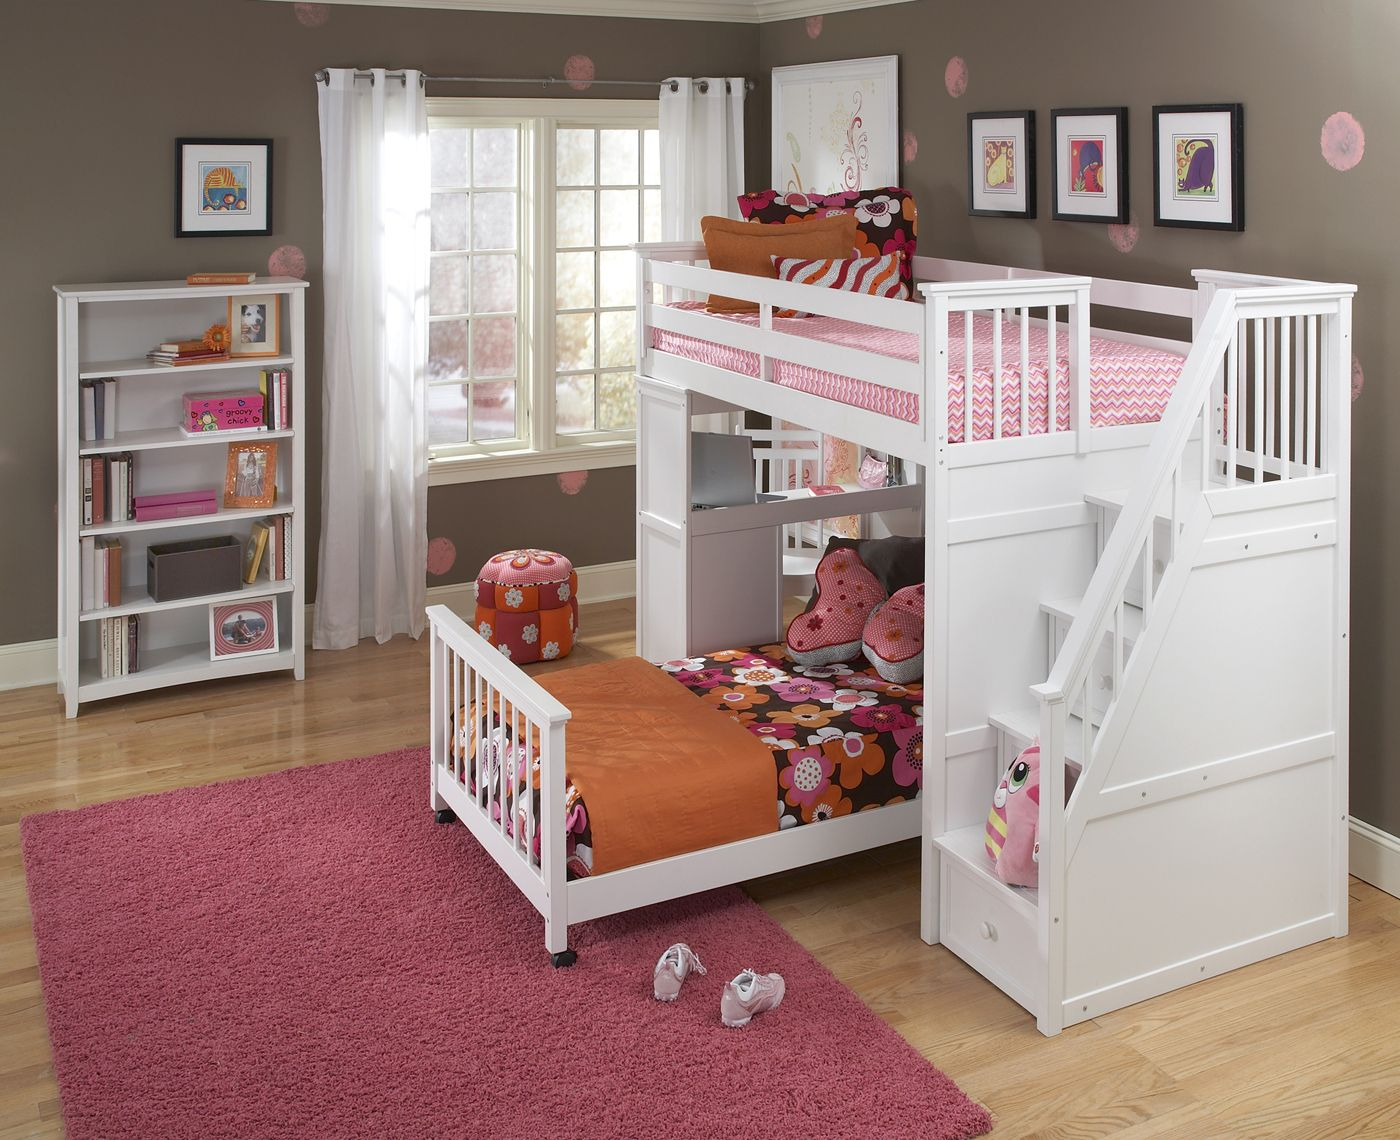 NE Kids School House Stair Loft Kids Bedroom Set with Tall